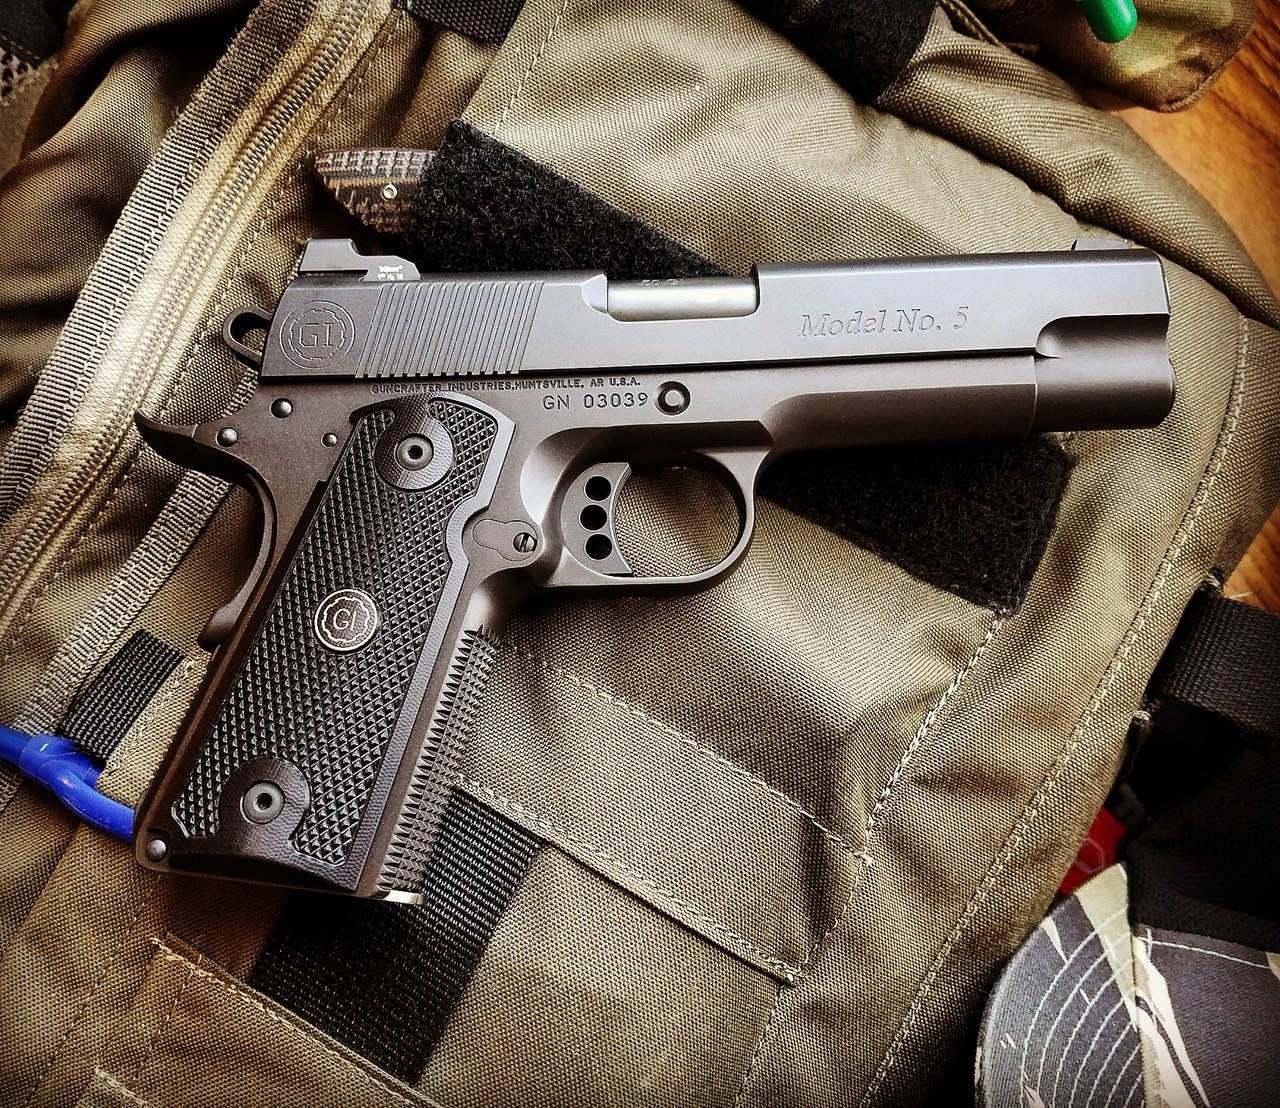 Guncrafter Industries Model 4 M1911 Commander pistol